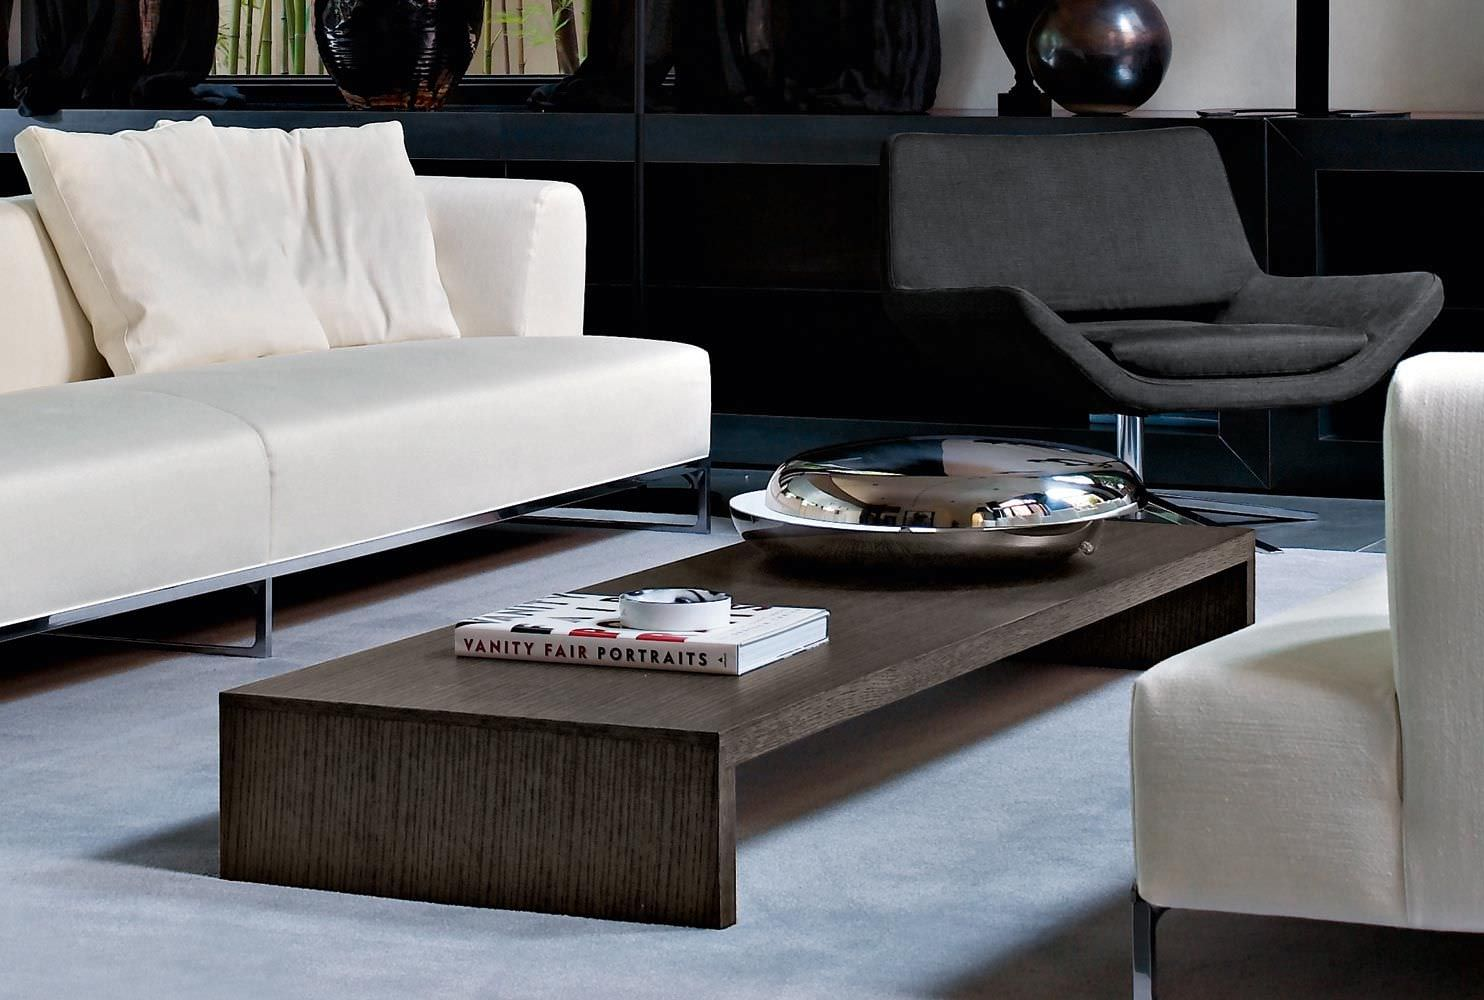 Walmart Coffee Table For Best Companion In The Living Room HomesFeed - Super low coffee table